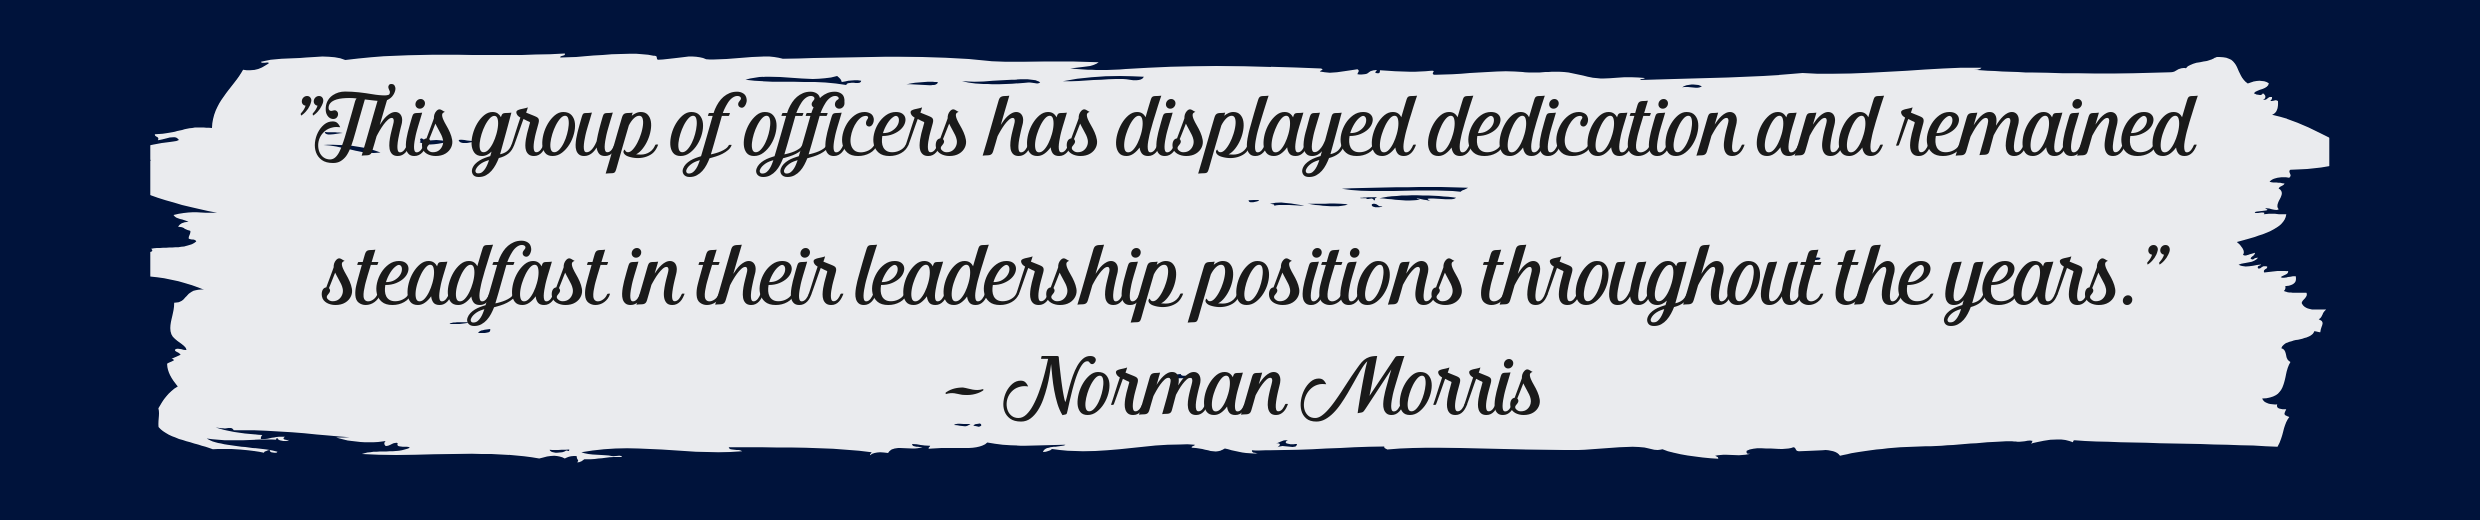 norman leadership quote (1).png